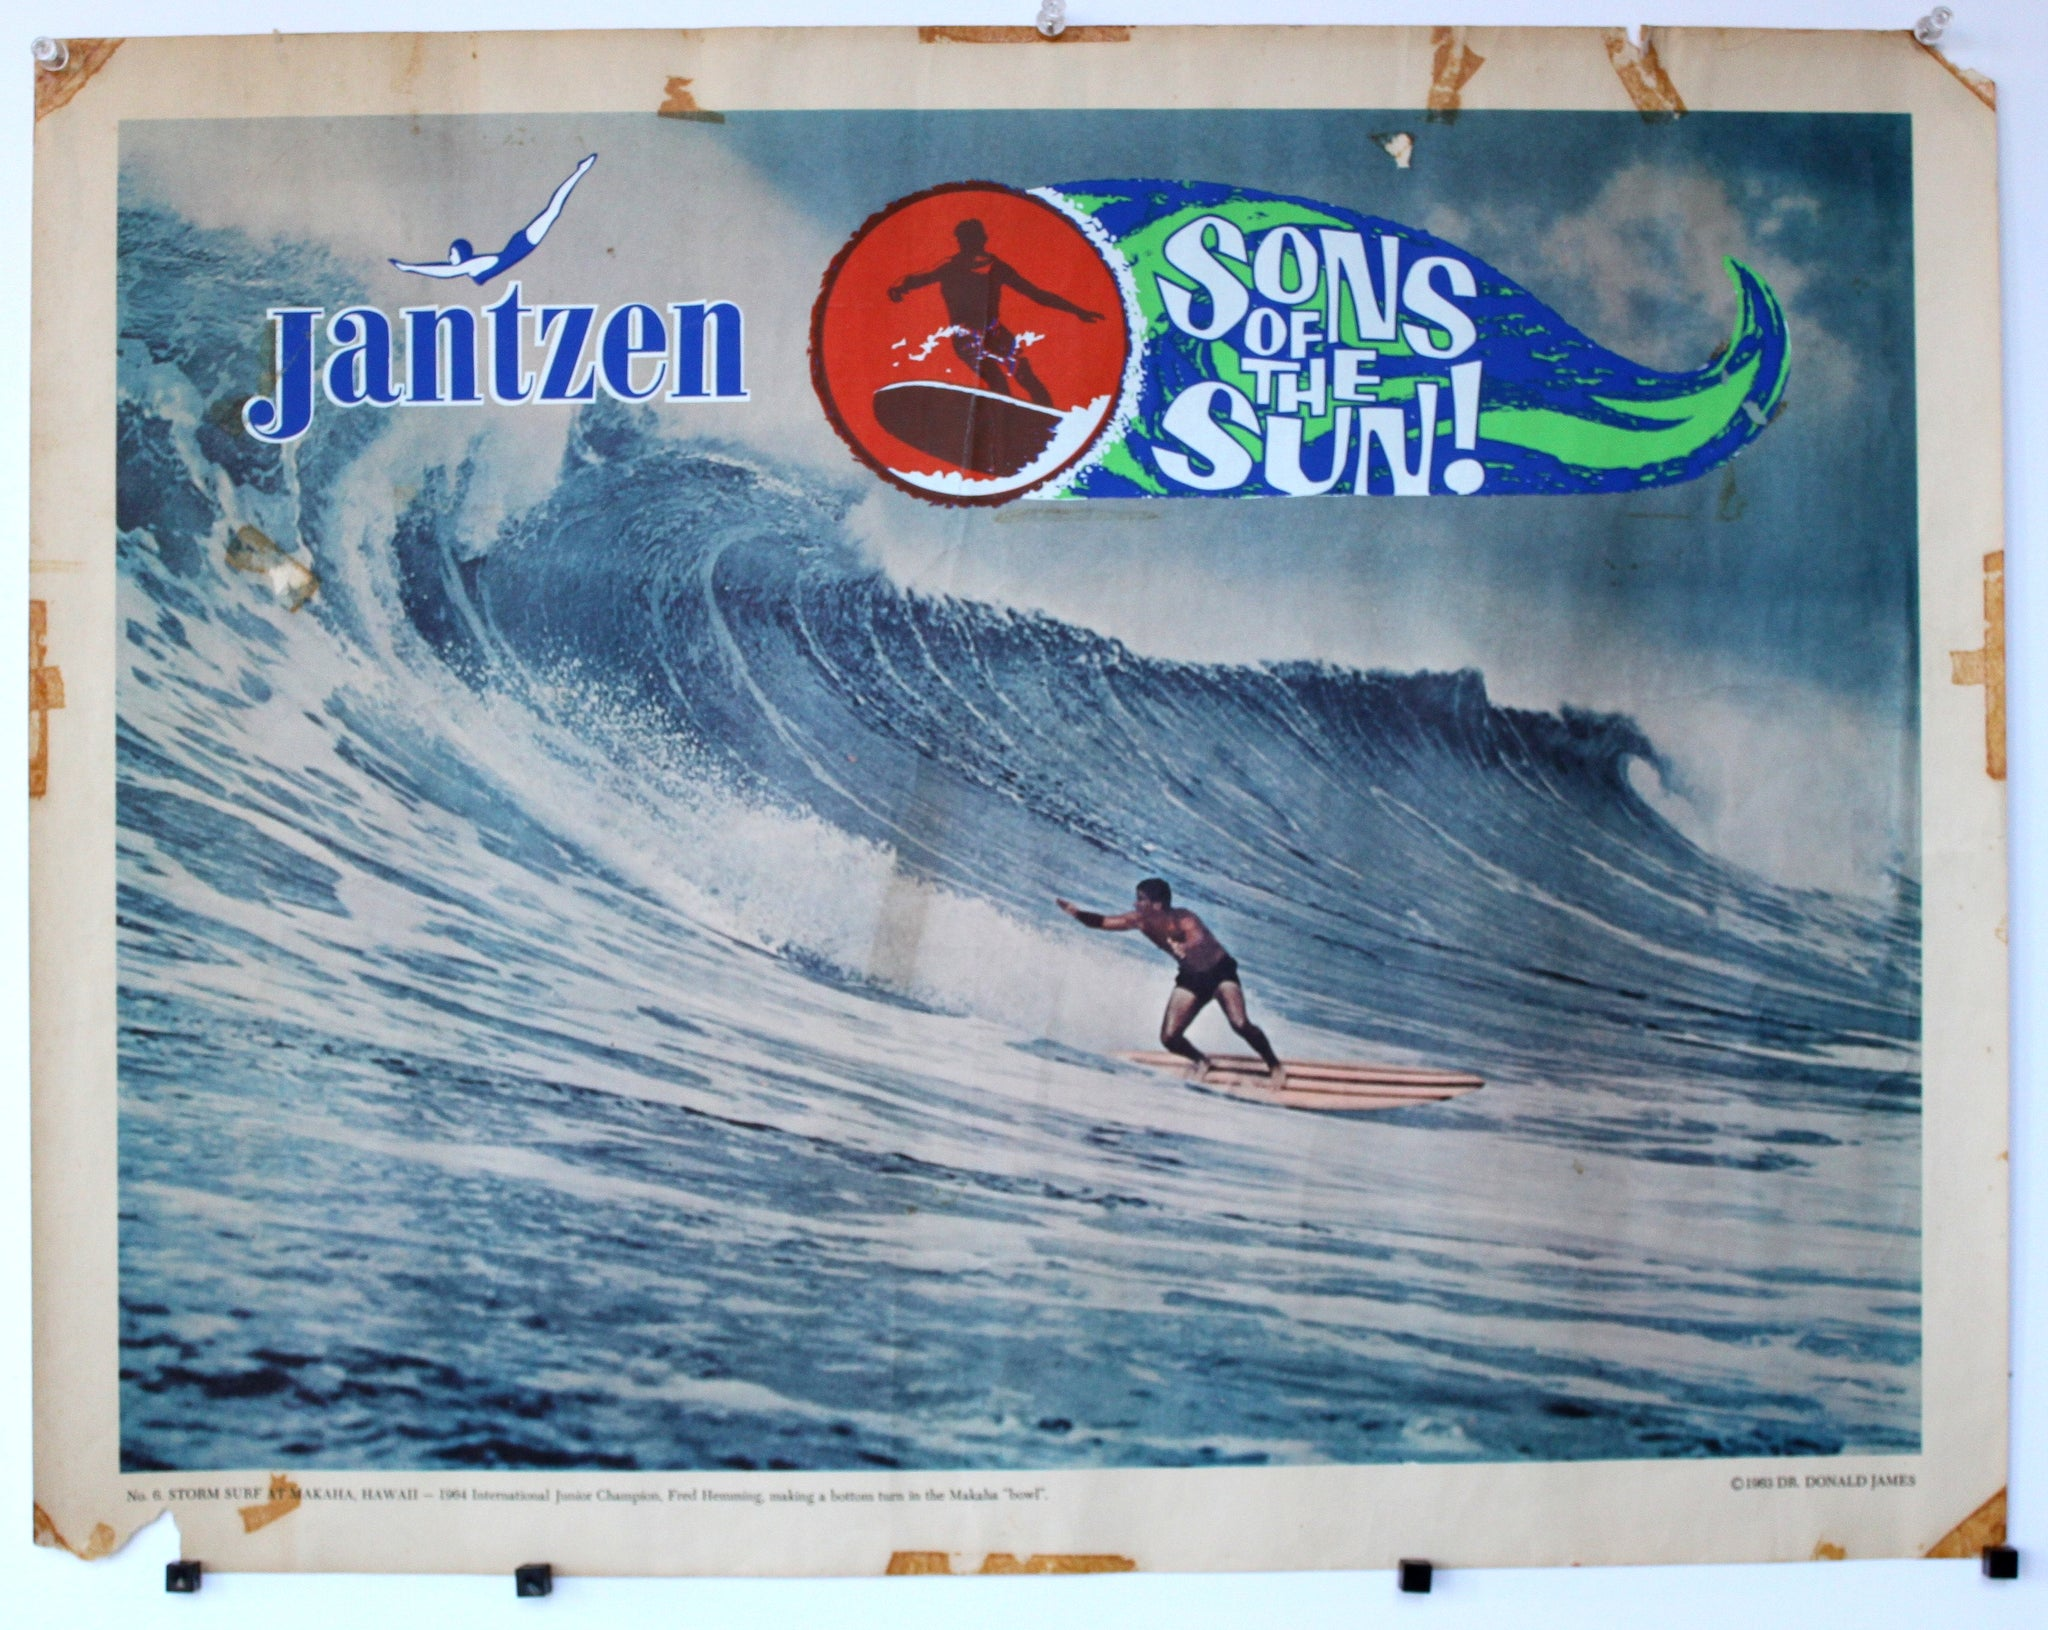 Sons of the Sun. Jantzen Promo poster.